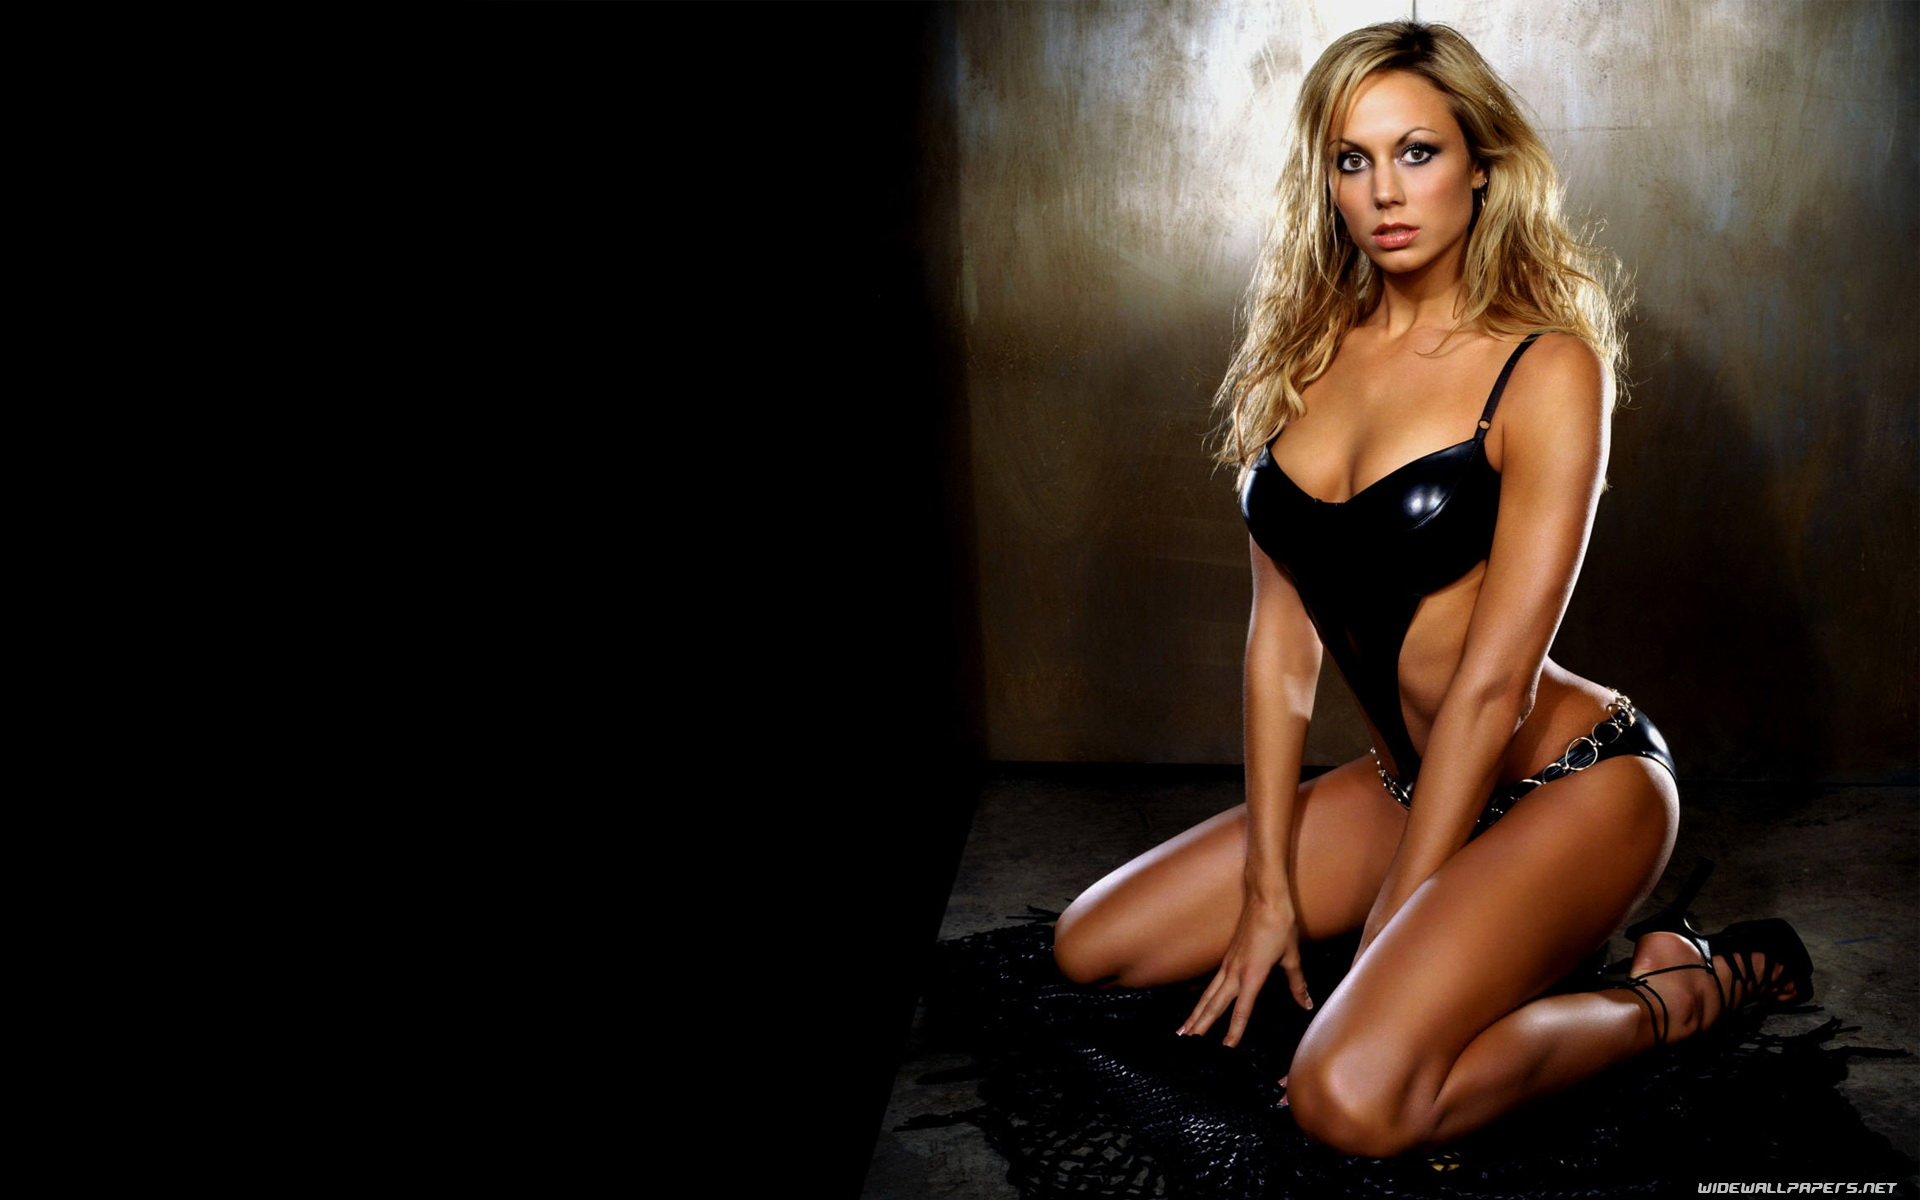 stacy keibler 1440x900 wallpapers - photo #4